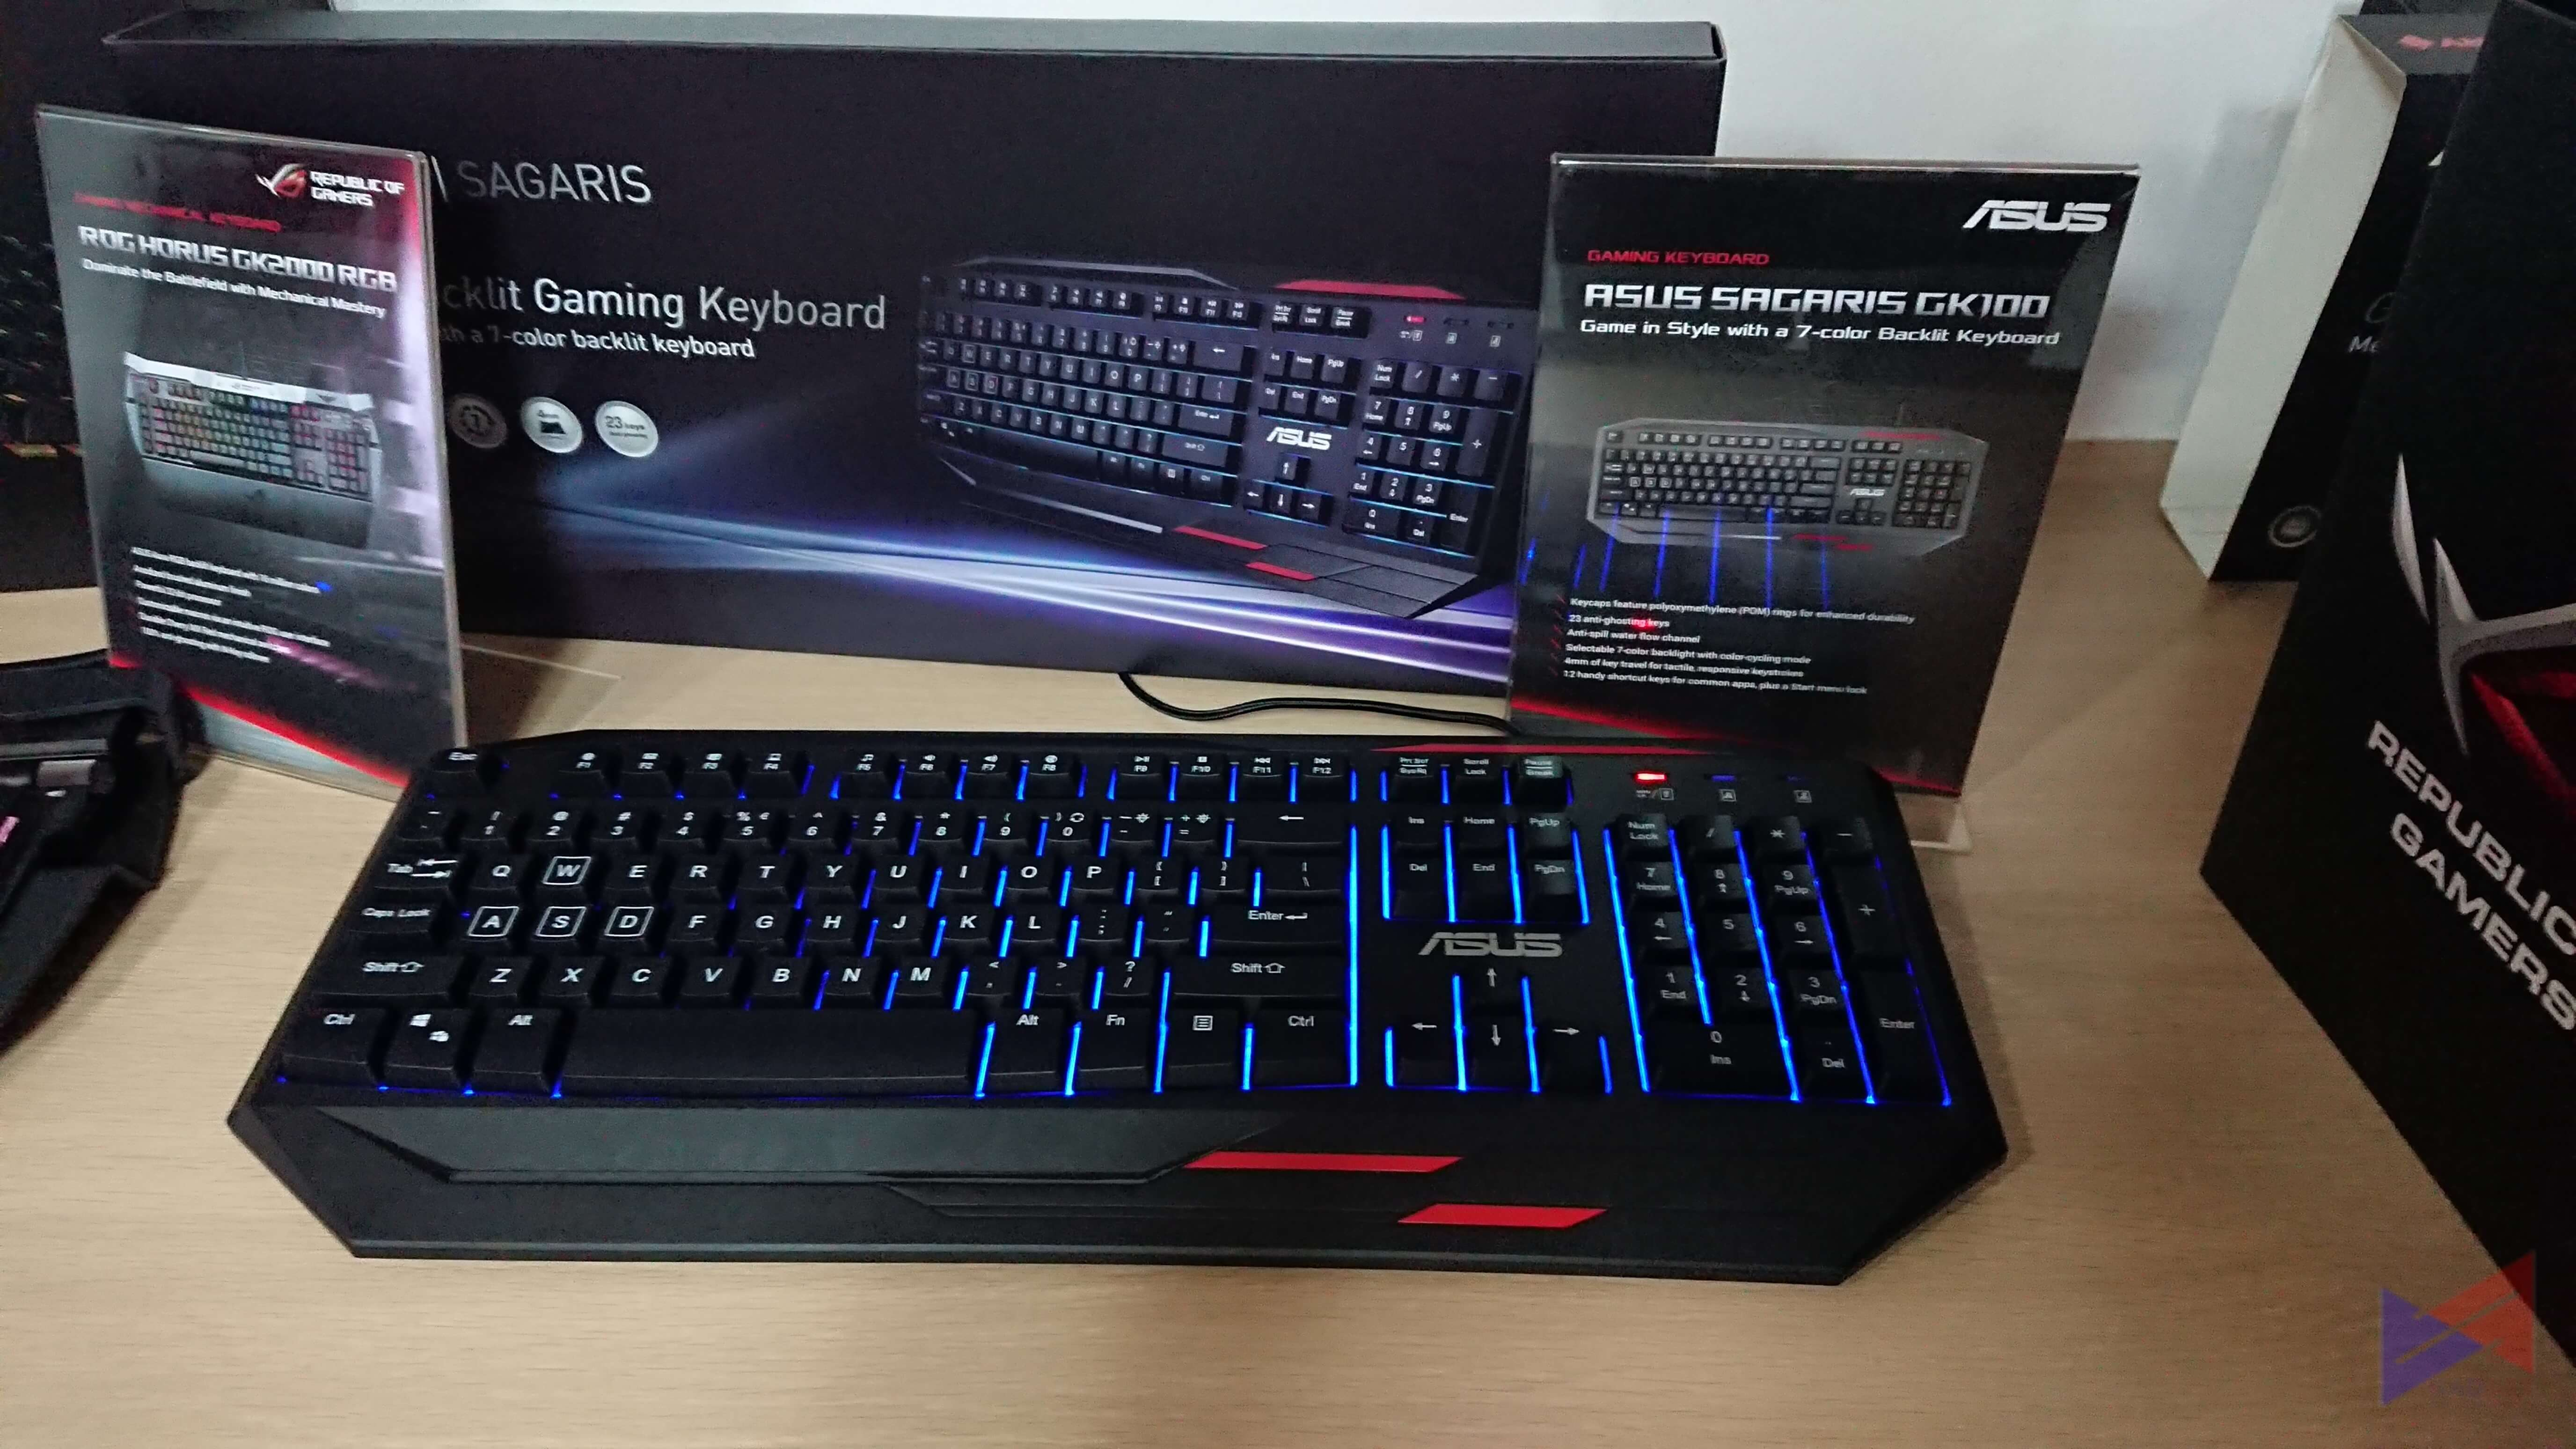 ASUS ROG Gives a Sneak Peak of Newest Tees and Peripherals for PH